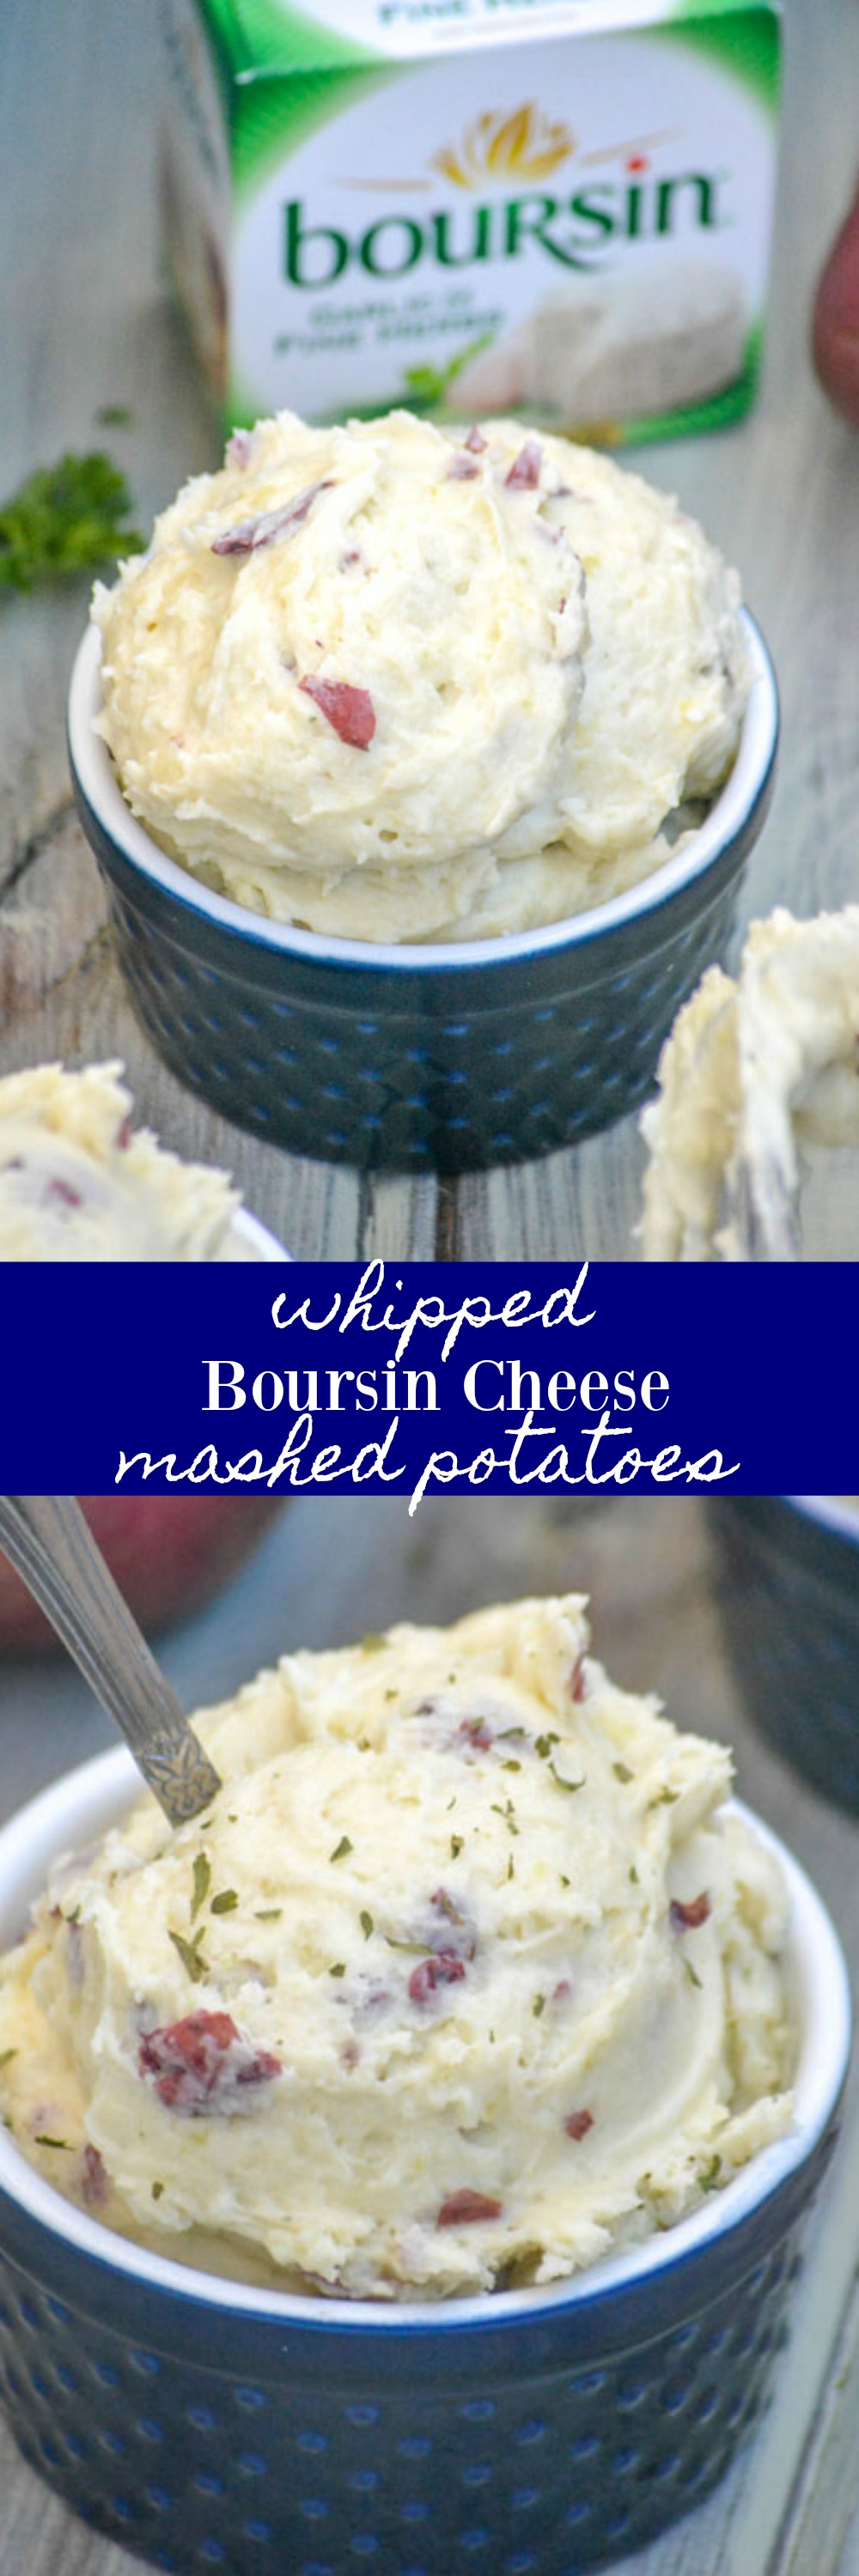 If you thought you loved mashed potatoes before, give these Whipped Boursin Cheese Mashed Red Potatoes a try and be prepared to fall into a whole new level of love with the classic side dish. These are pure comfort food, perfect for dinner when served with virtually any meaty entree.